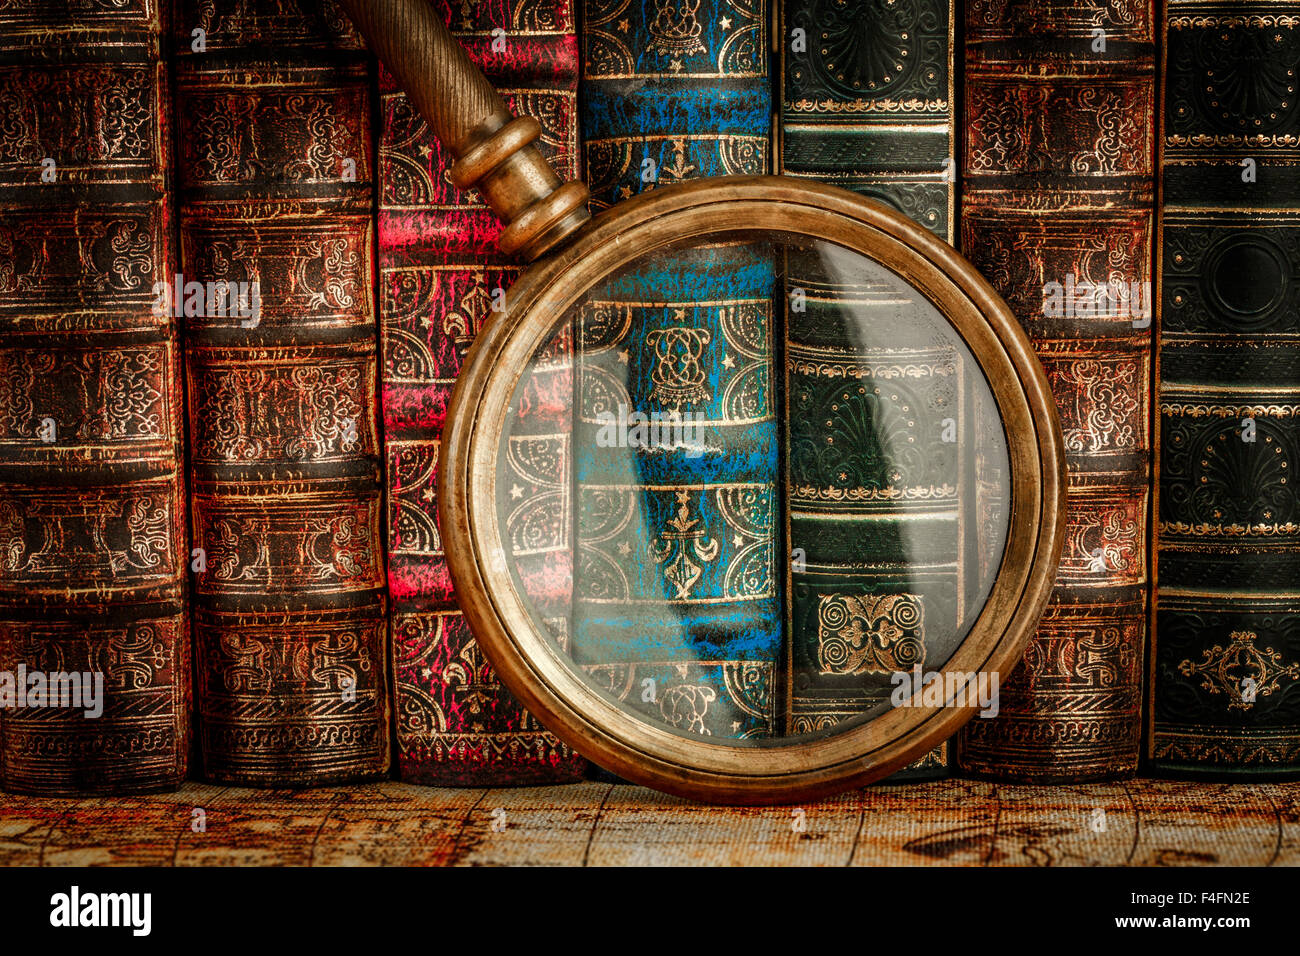 Ancient old books and magnifying glass - Stock Image